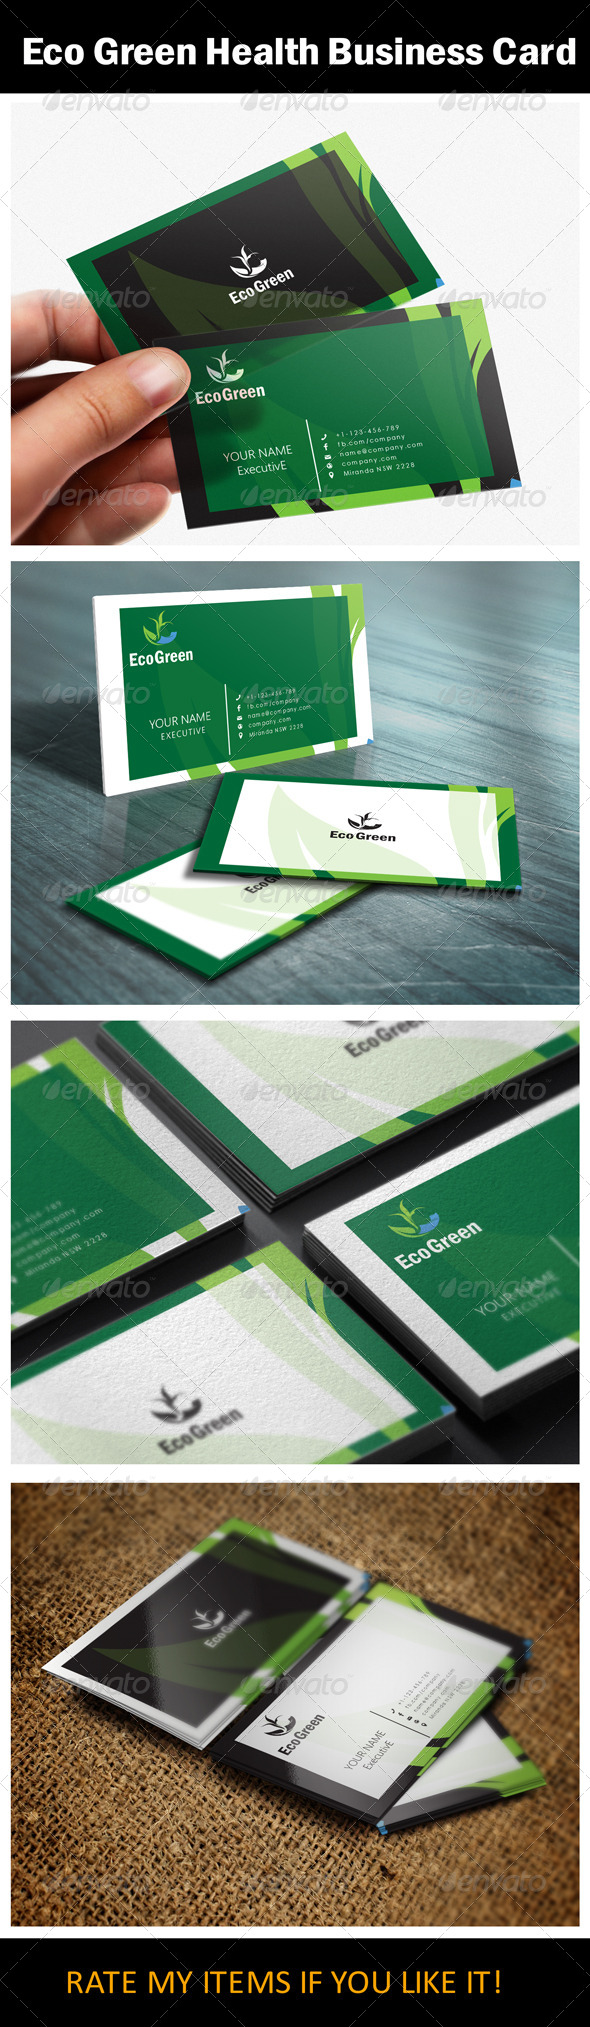 Eco Green Health Business Card Design by shujaktk | GraphicRiver